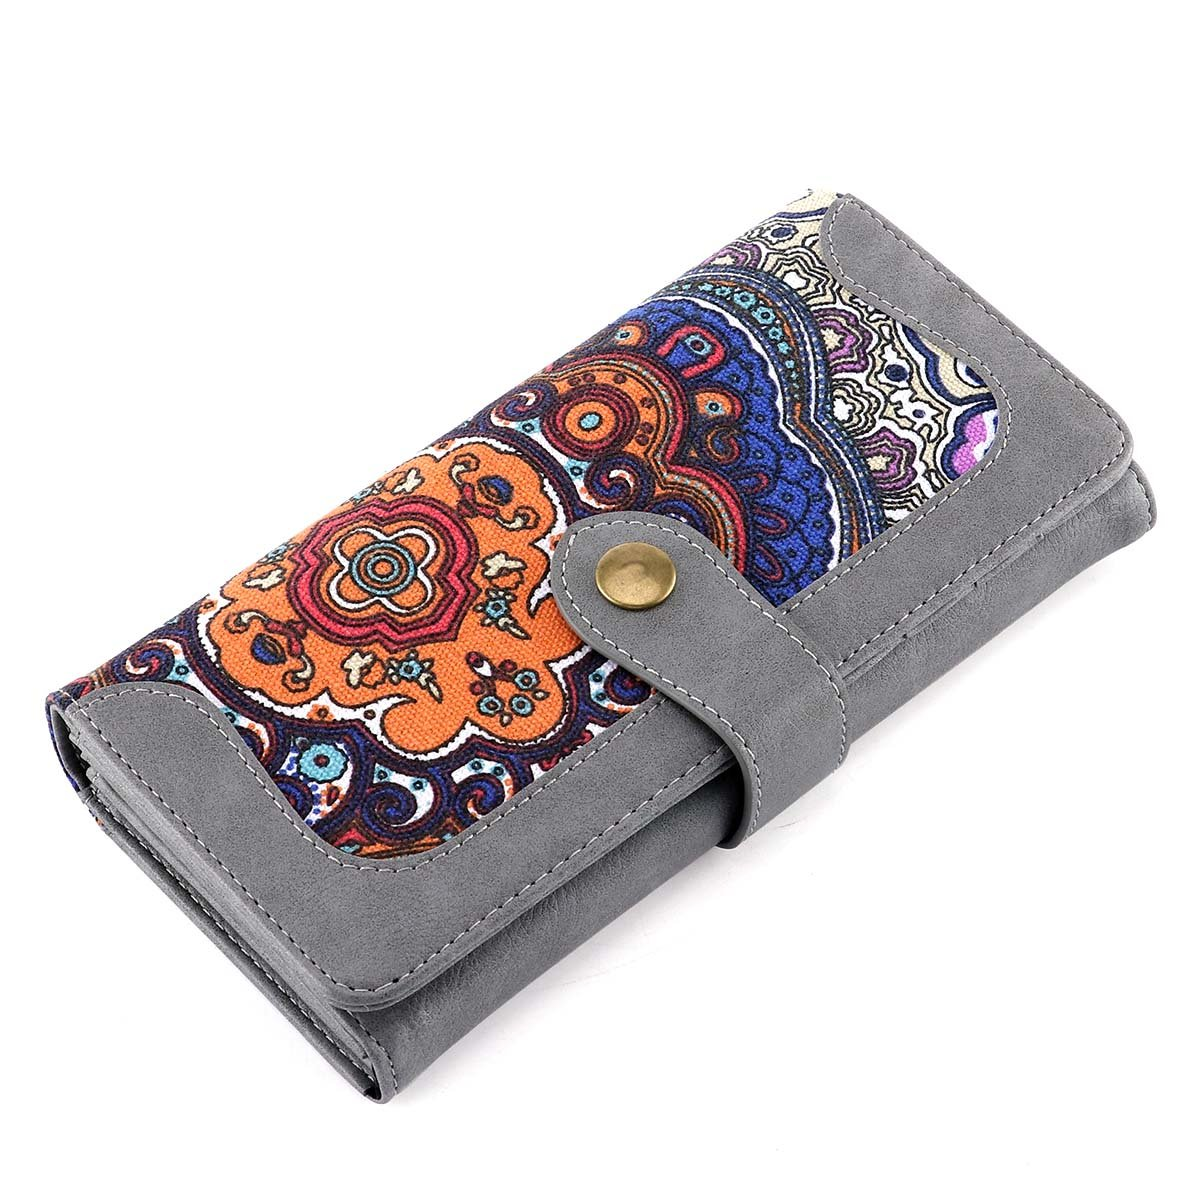 Women Wallet Large Capacity Clutch Wallet Holder Purse with ID Window and Inner Zipper Pocket (Grey)